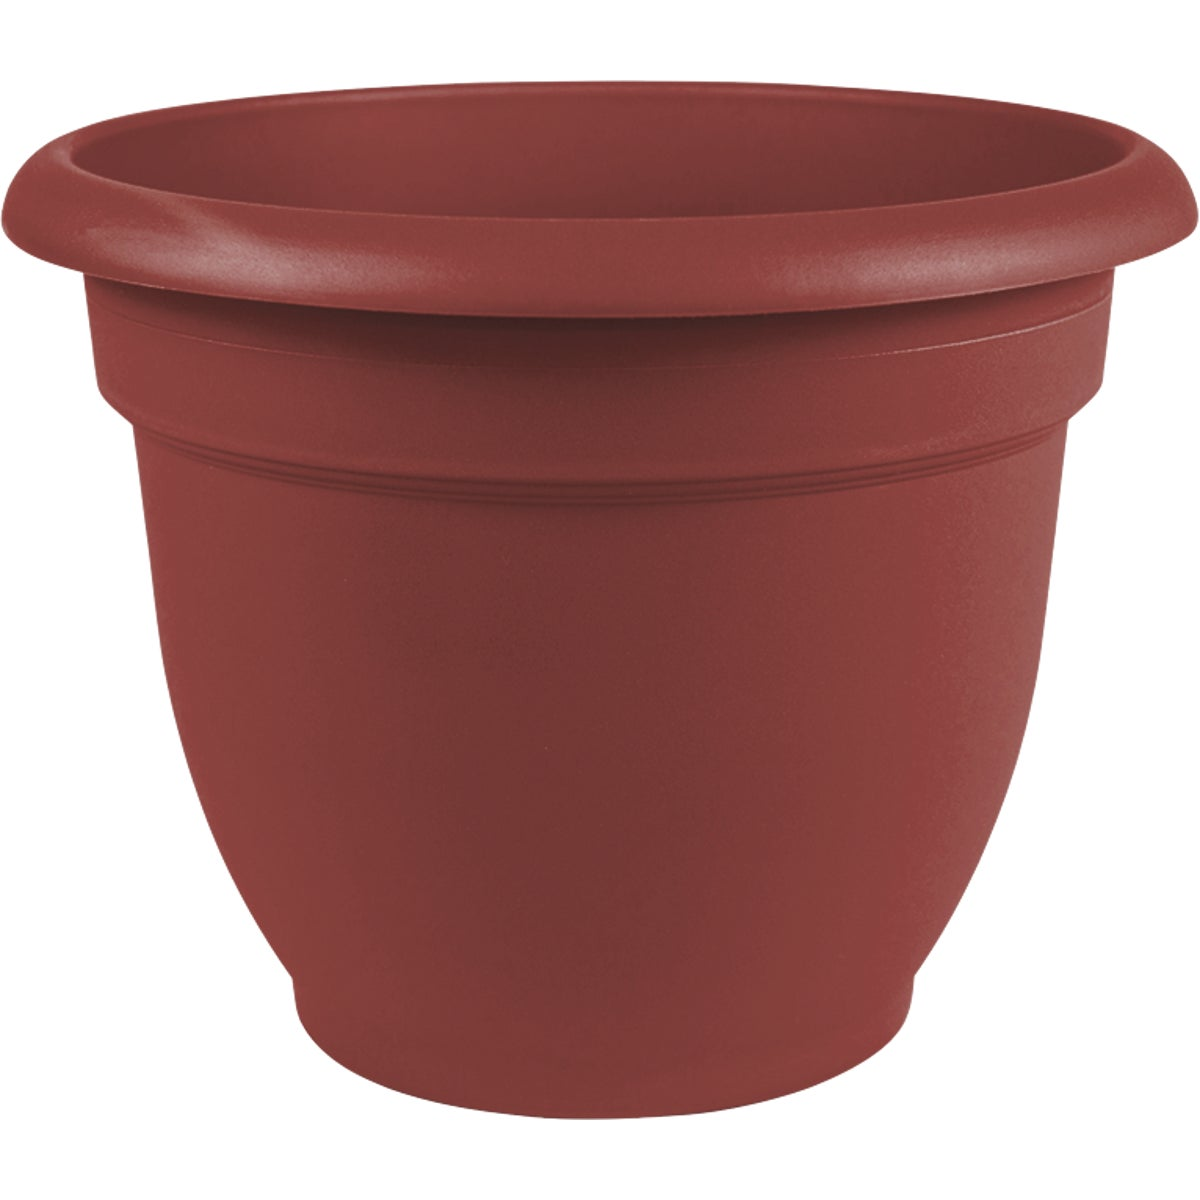 "12"" SUN ORNGE ARIANA POT - 465122-1001 by Fiskars Brands Inc"